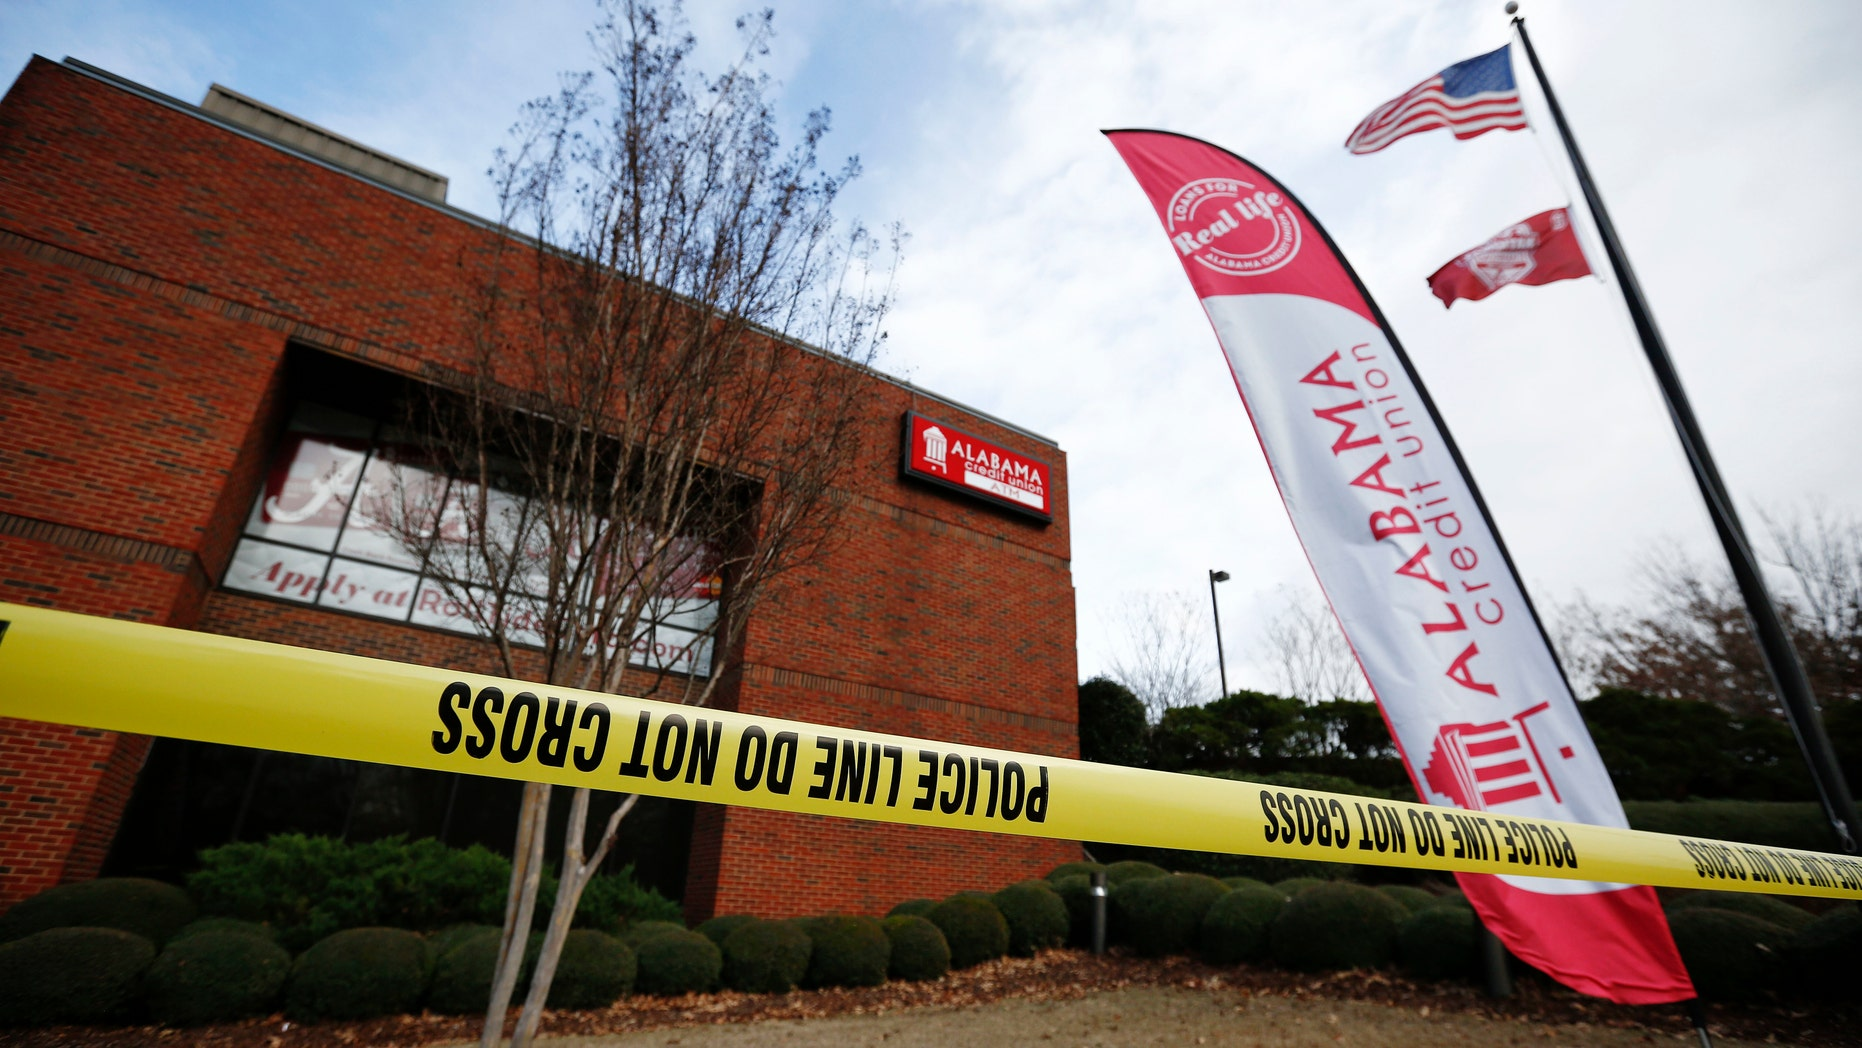 Police tape surrounds the Alabama Credit Union building after reports of a hostage standoff, Tuesday, Jan. 10, 2017, in Tuscaloosa, Ala. A group of hostages was freed, unharmed, and a man with a gun was arrested Tuesday at the credit union branch near the University of Alabama, police said. (AP Photo/Brynn Anderson)